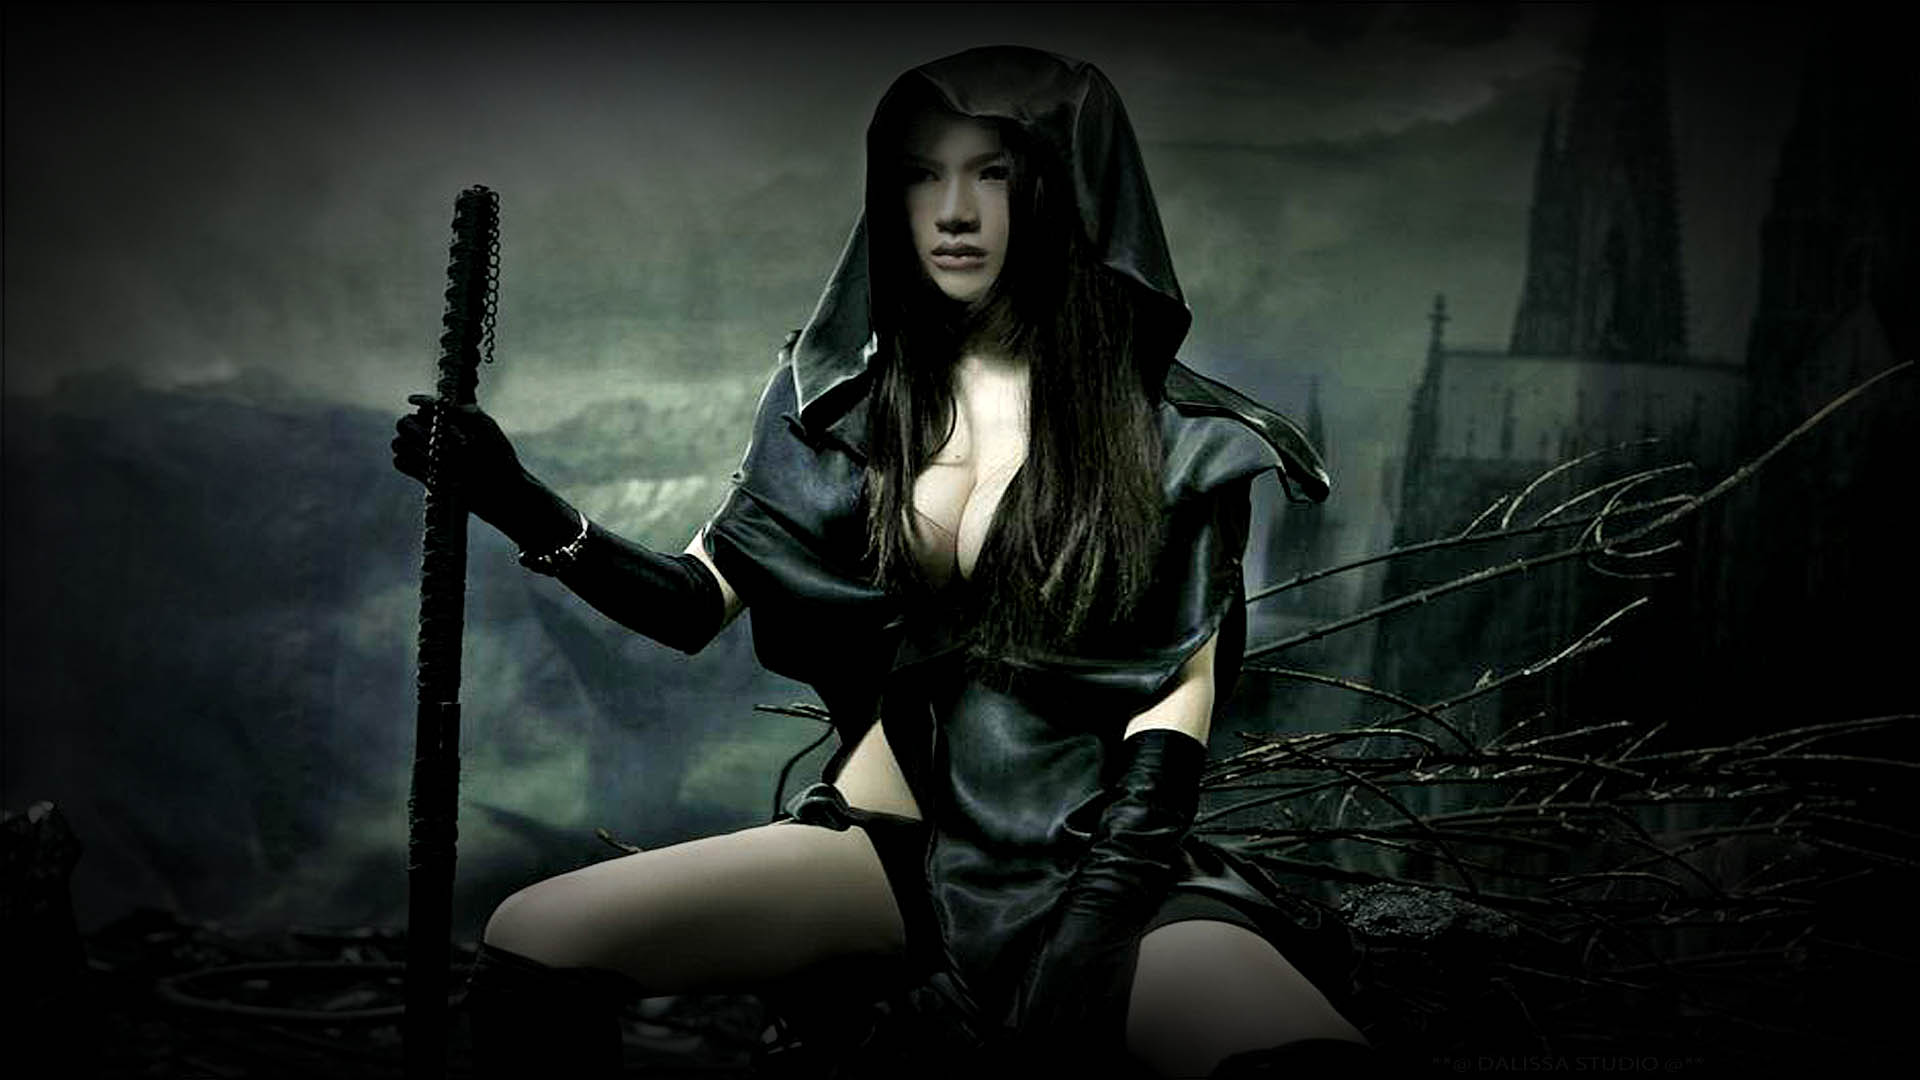 women warrior full hd wallpaper and background | 1920x1080 | id:161662